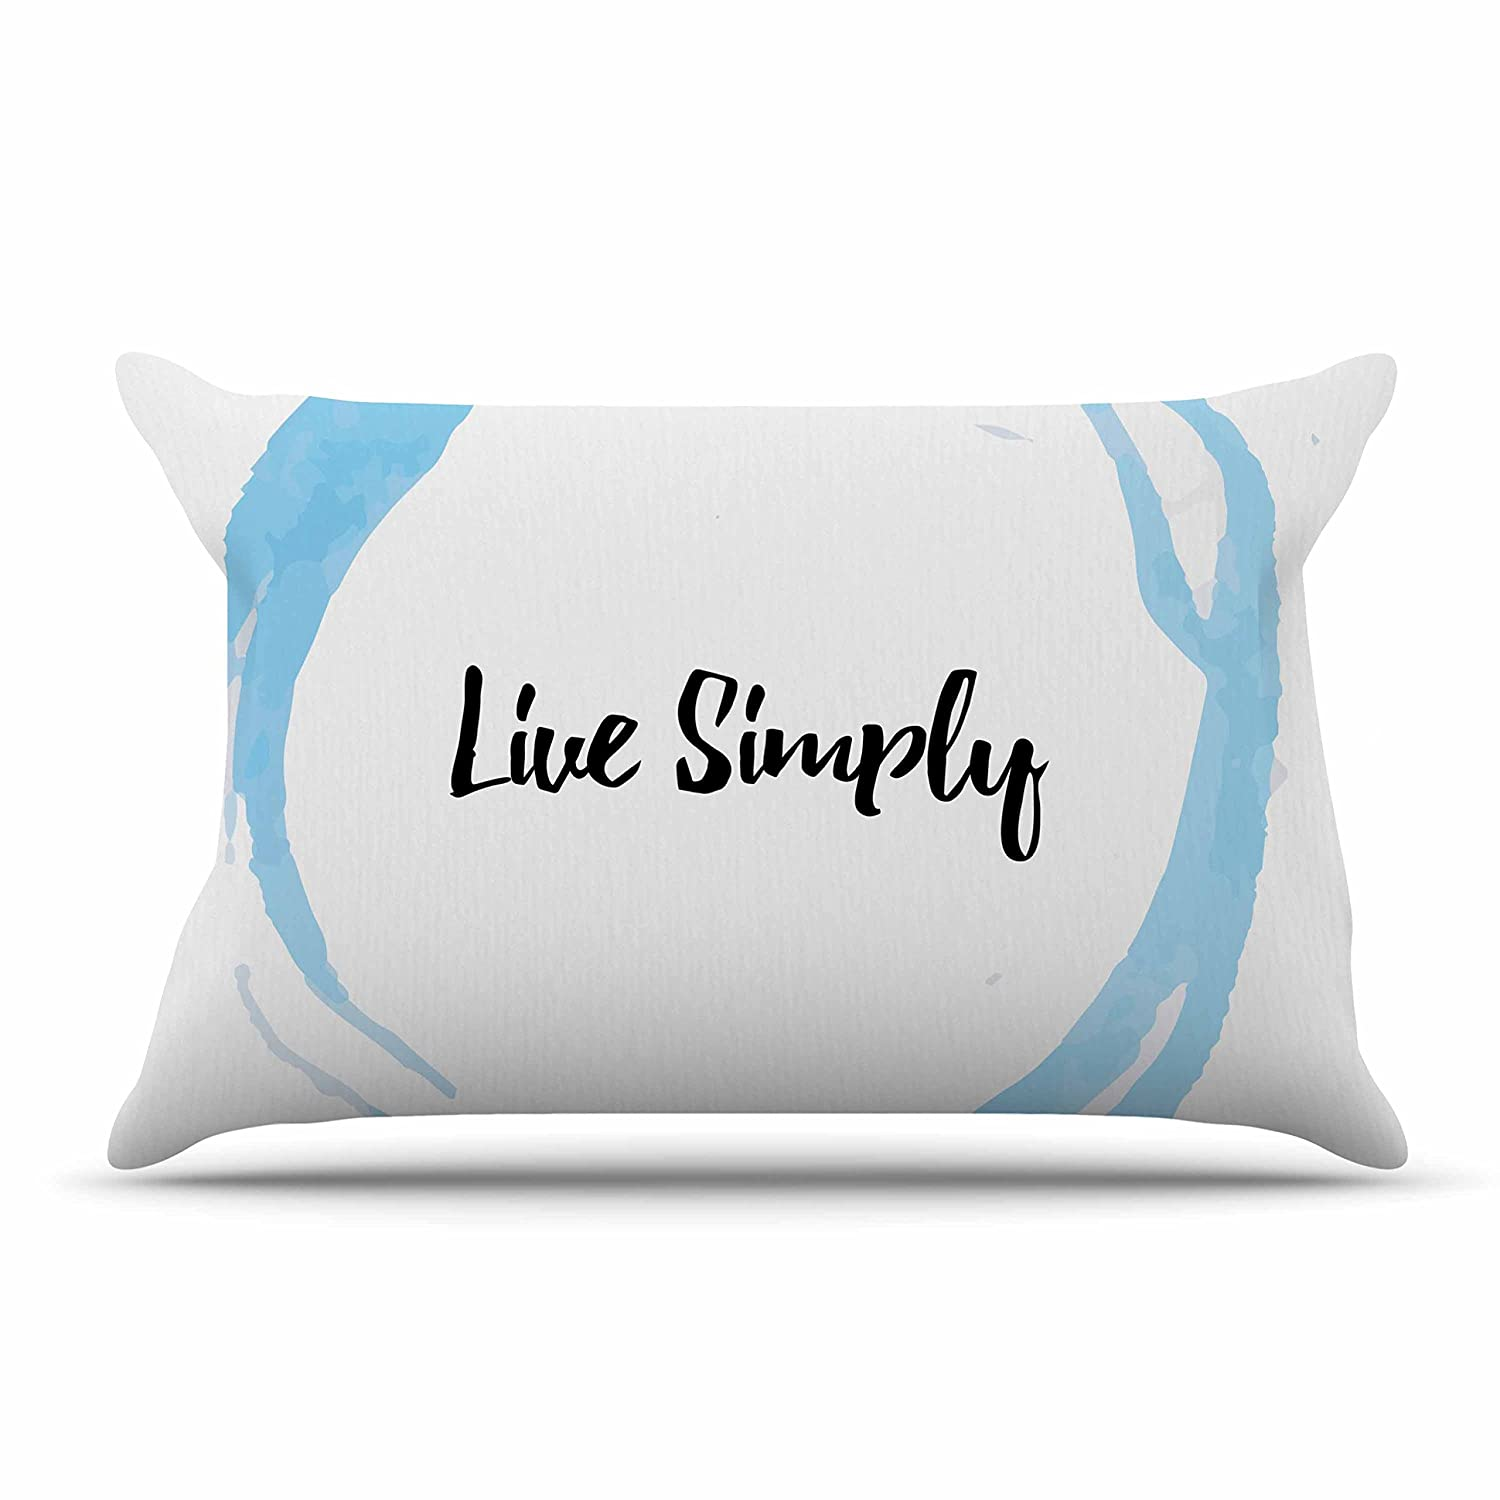 Kess InHouse Kess Original Live Simply King Featherweight Sham